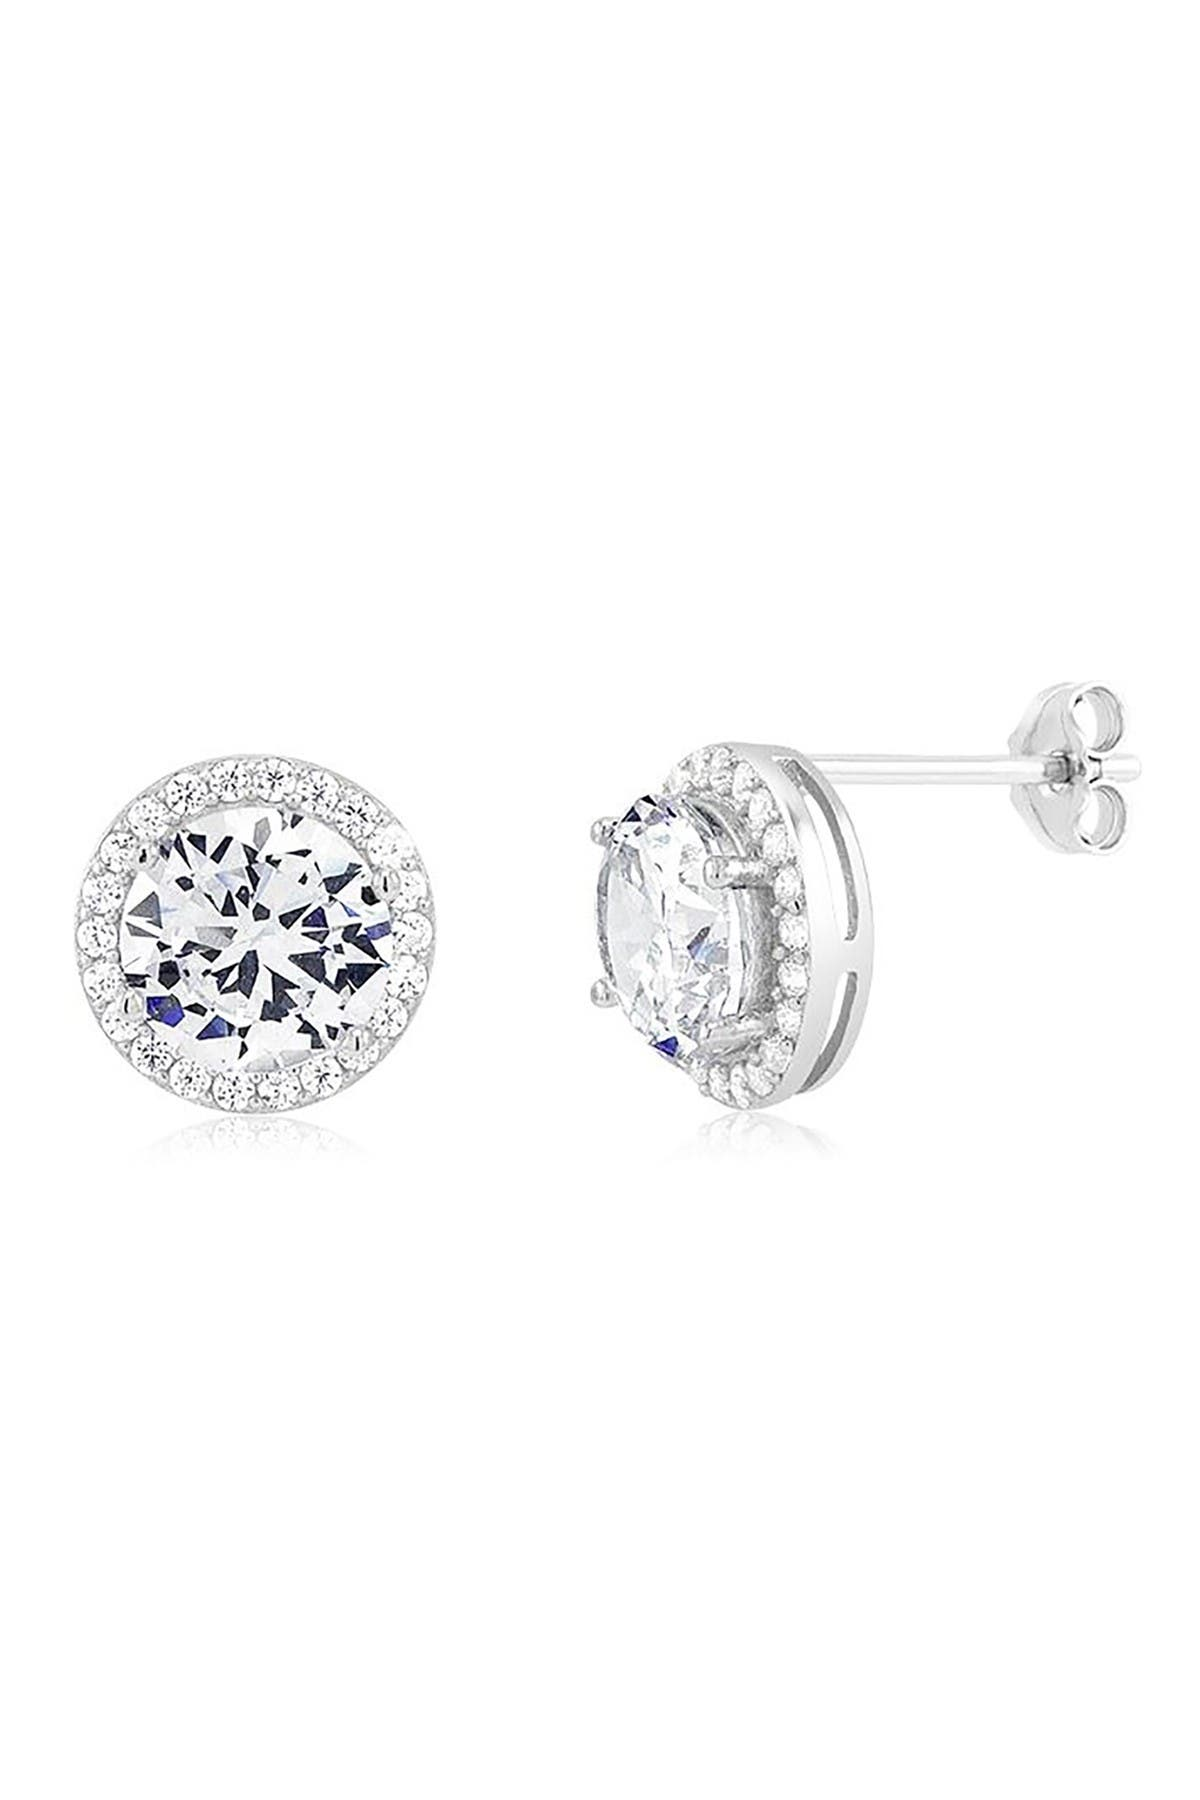 Image of Savvy Cie Rhodium Plated White CZ Halo Stud Earrings